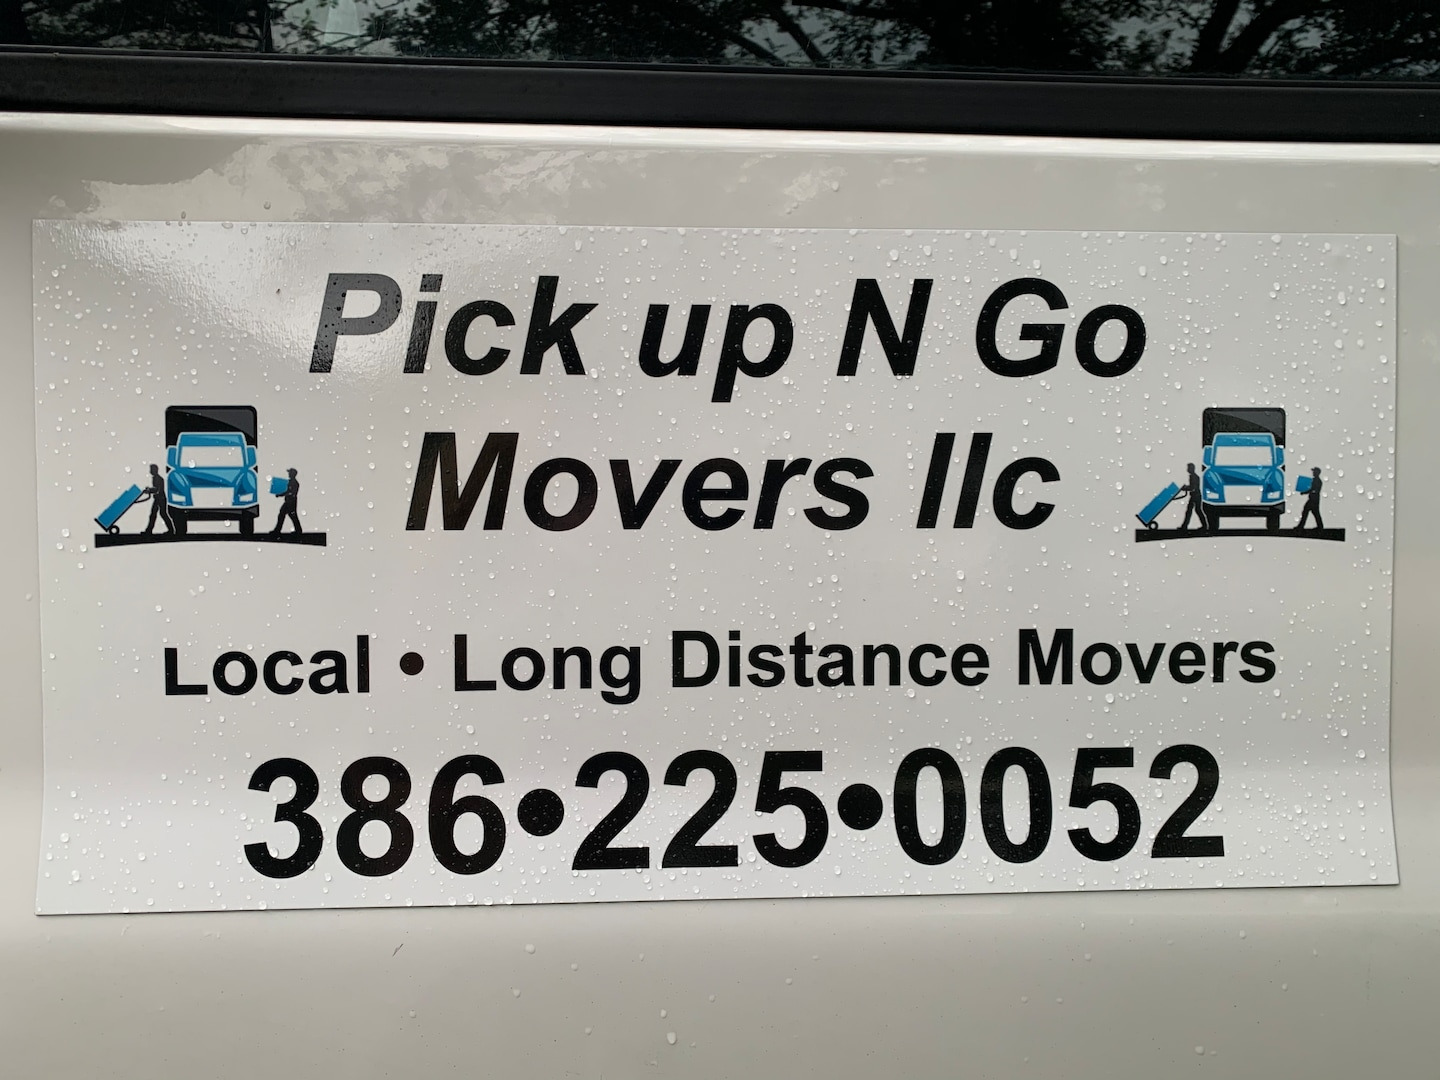 Pick Up N Go Movers